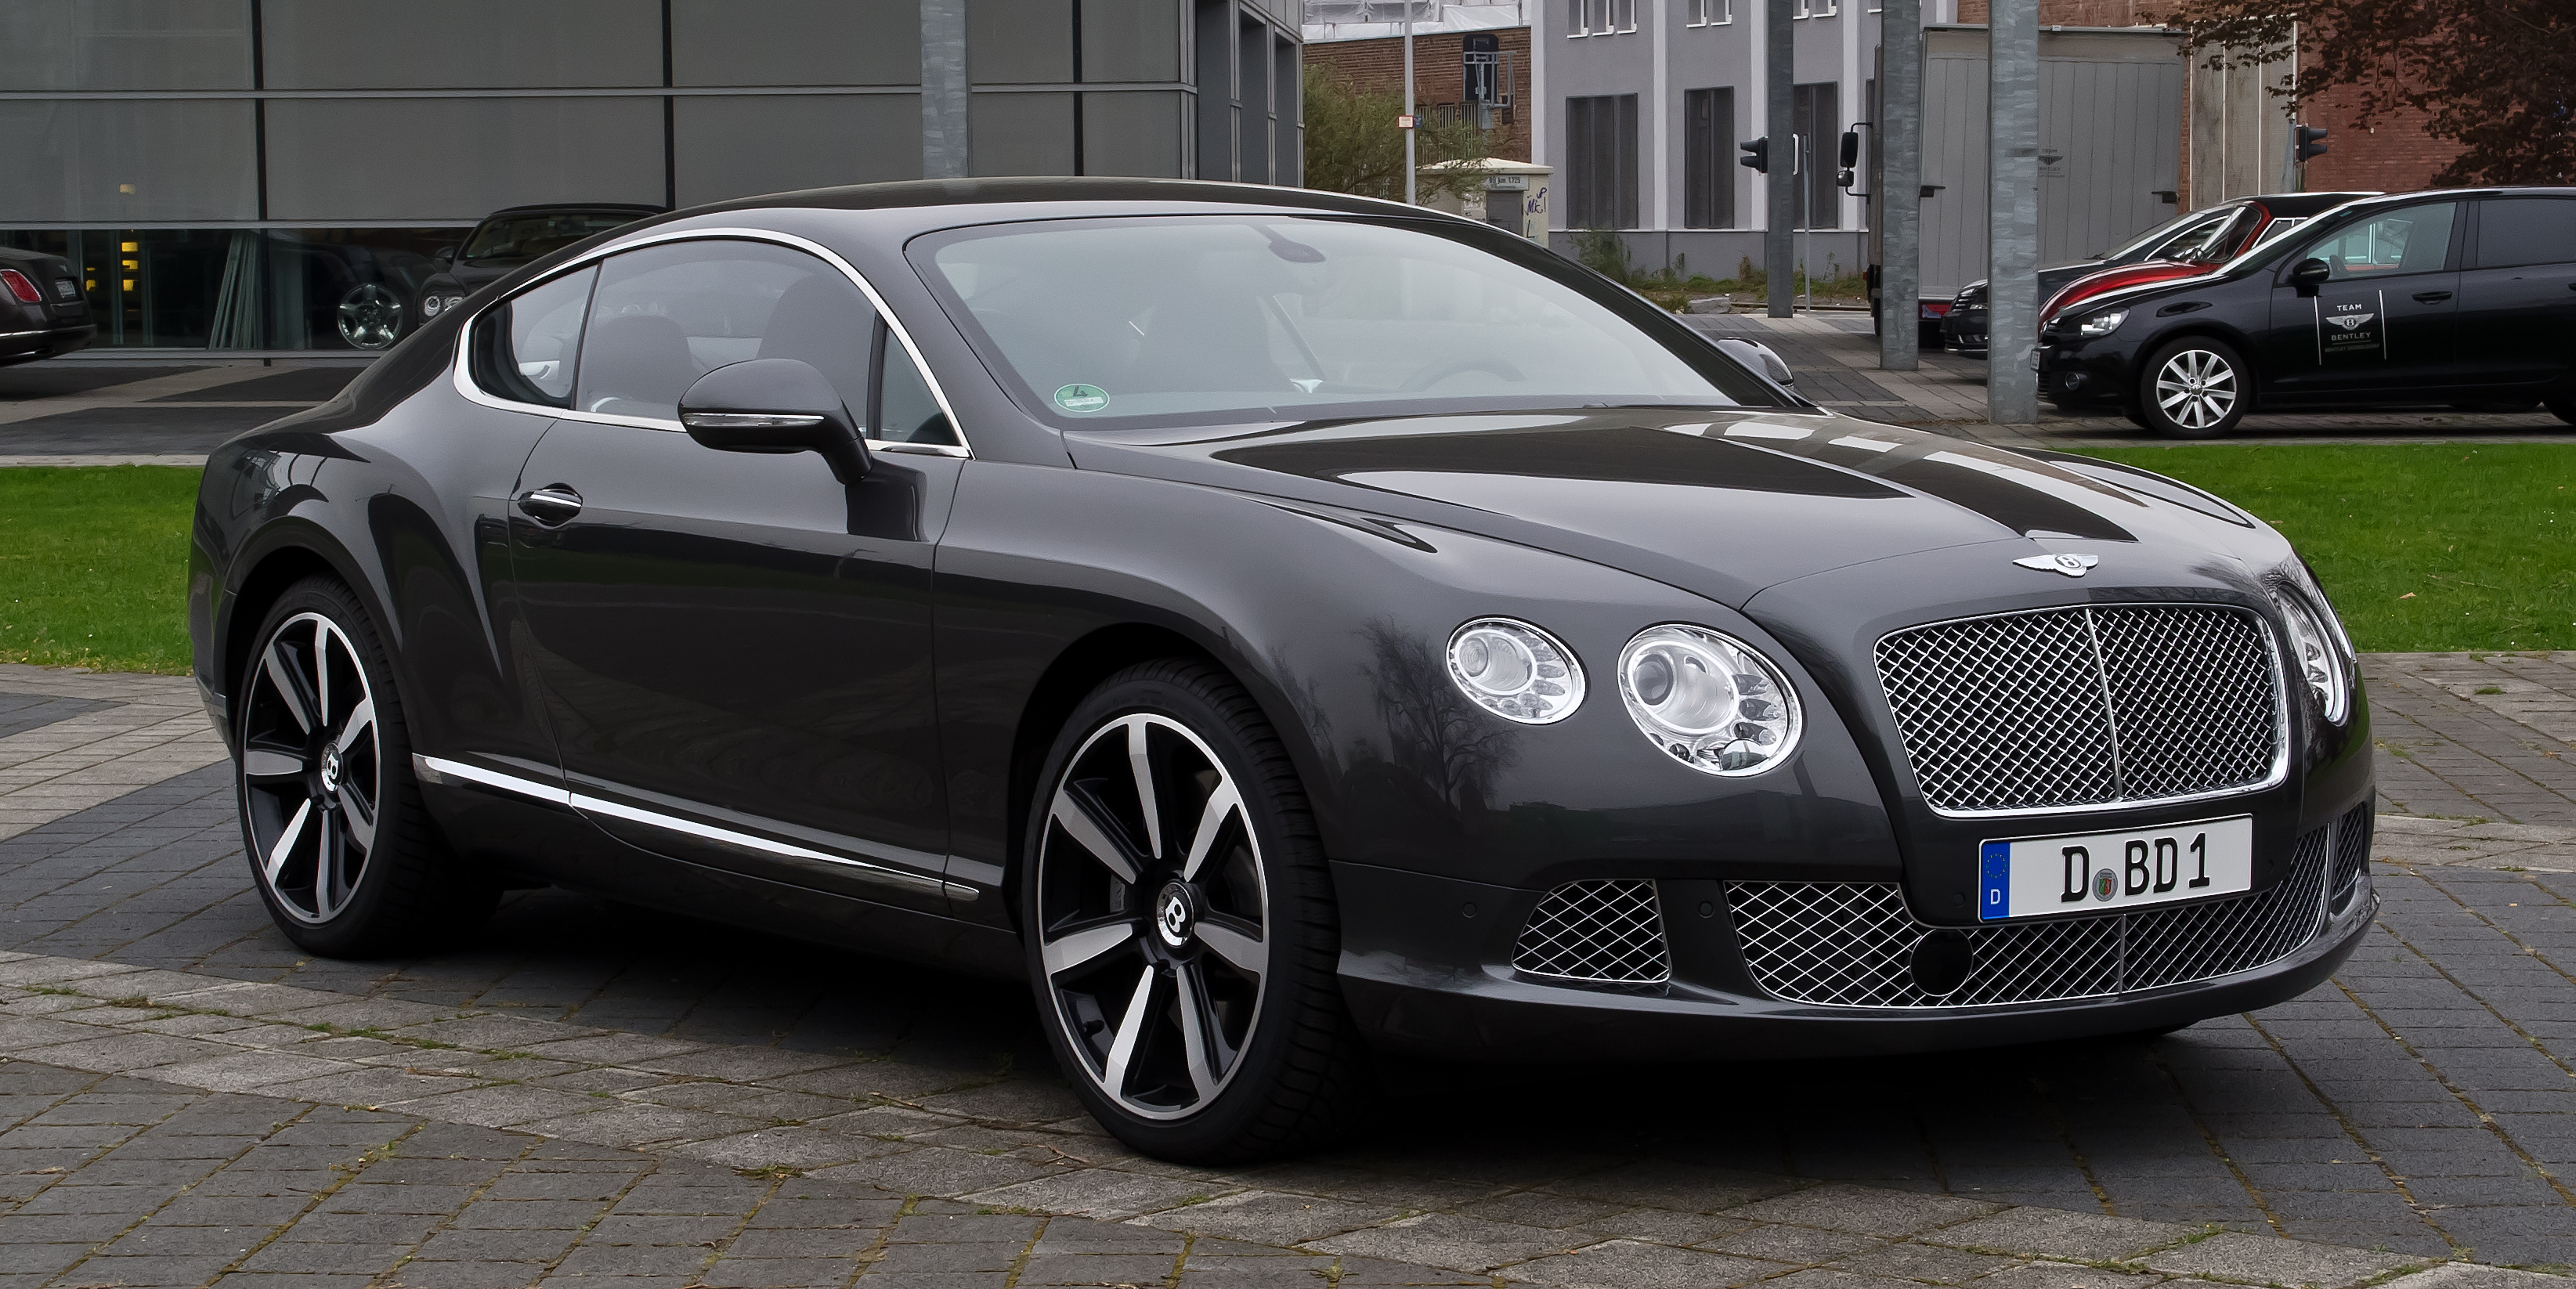 File:Bentley Continental GT (II) – Frontansicht (3), 5.